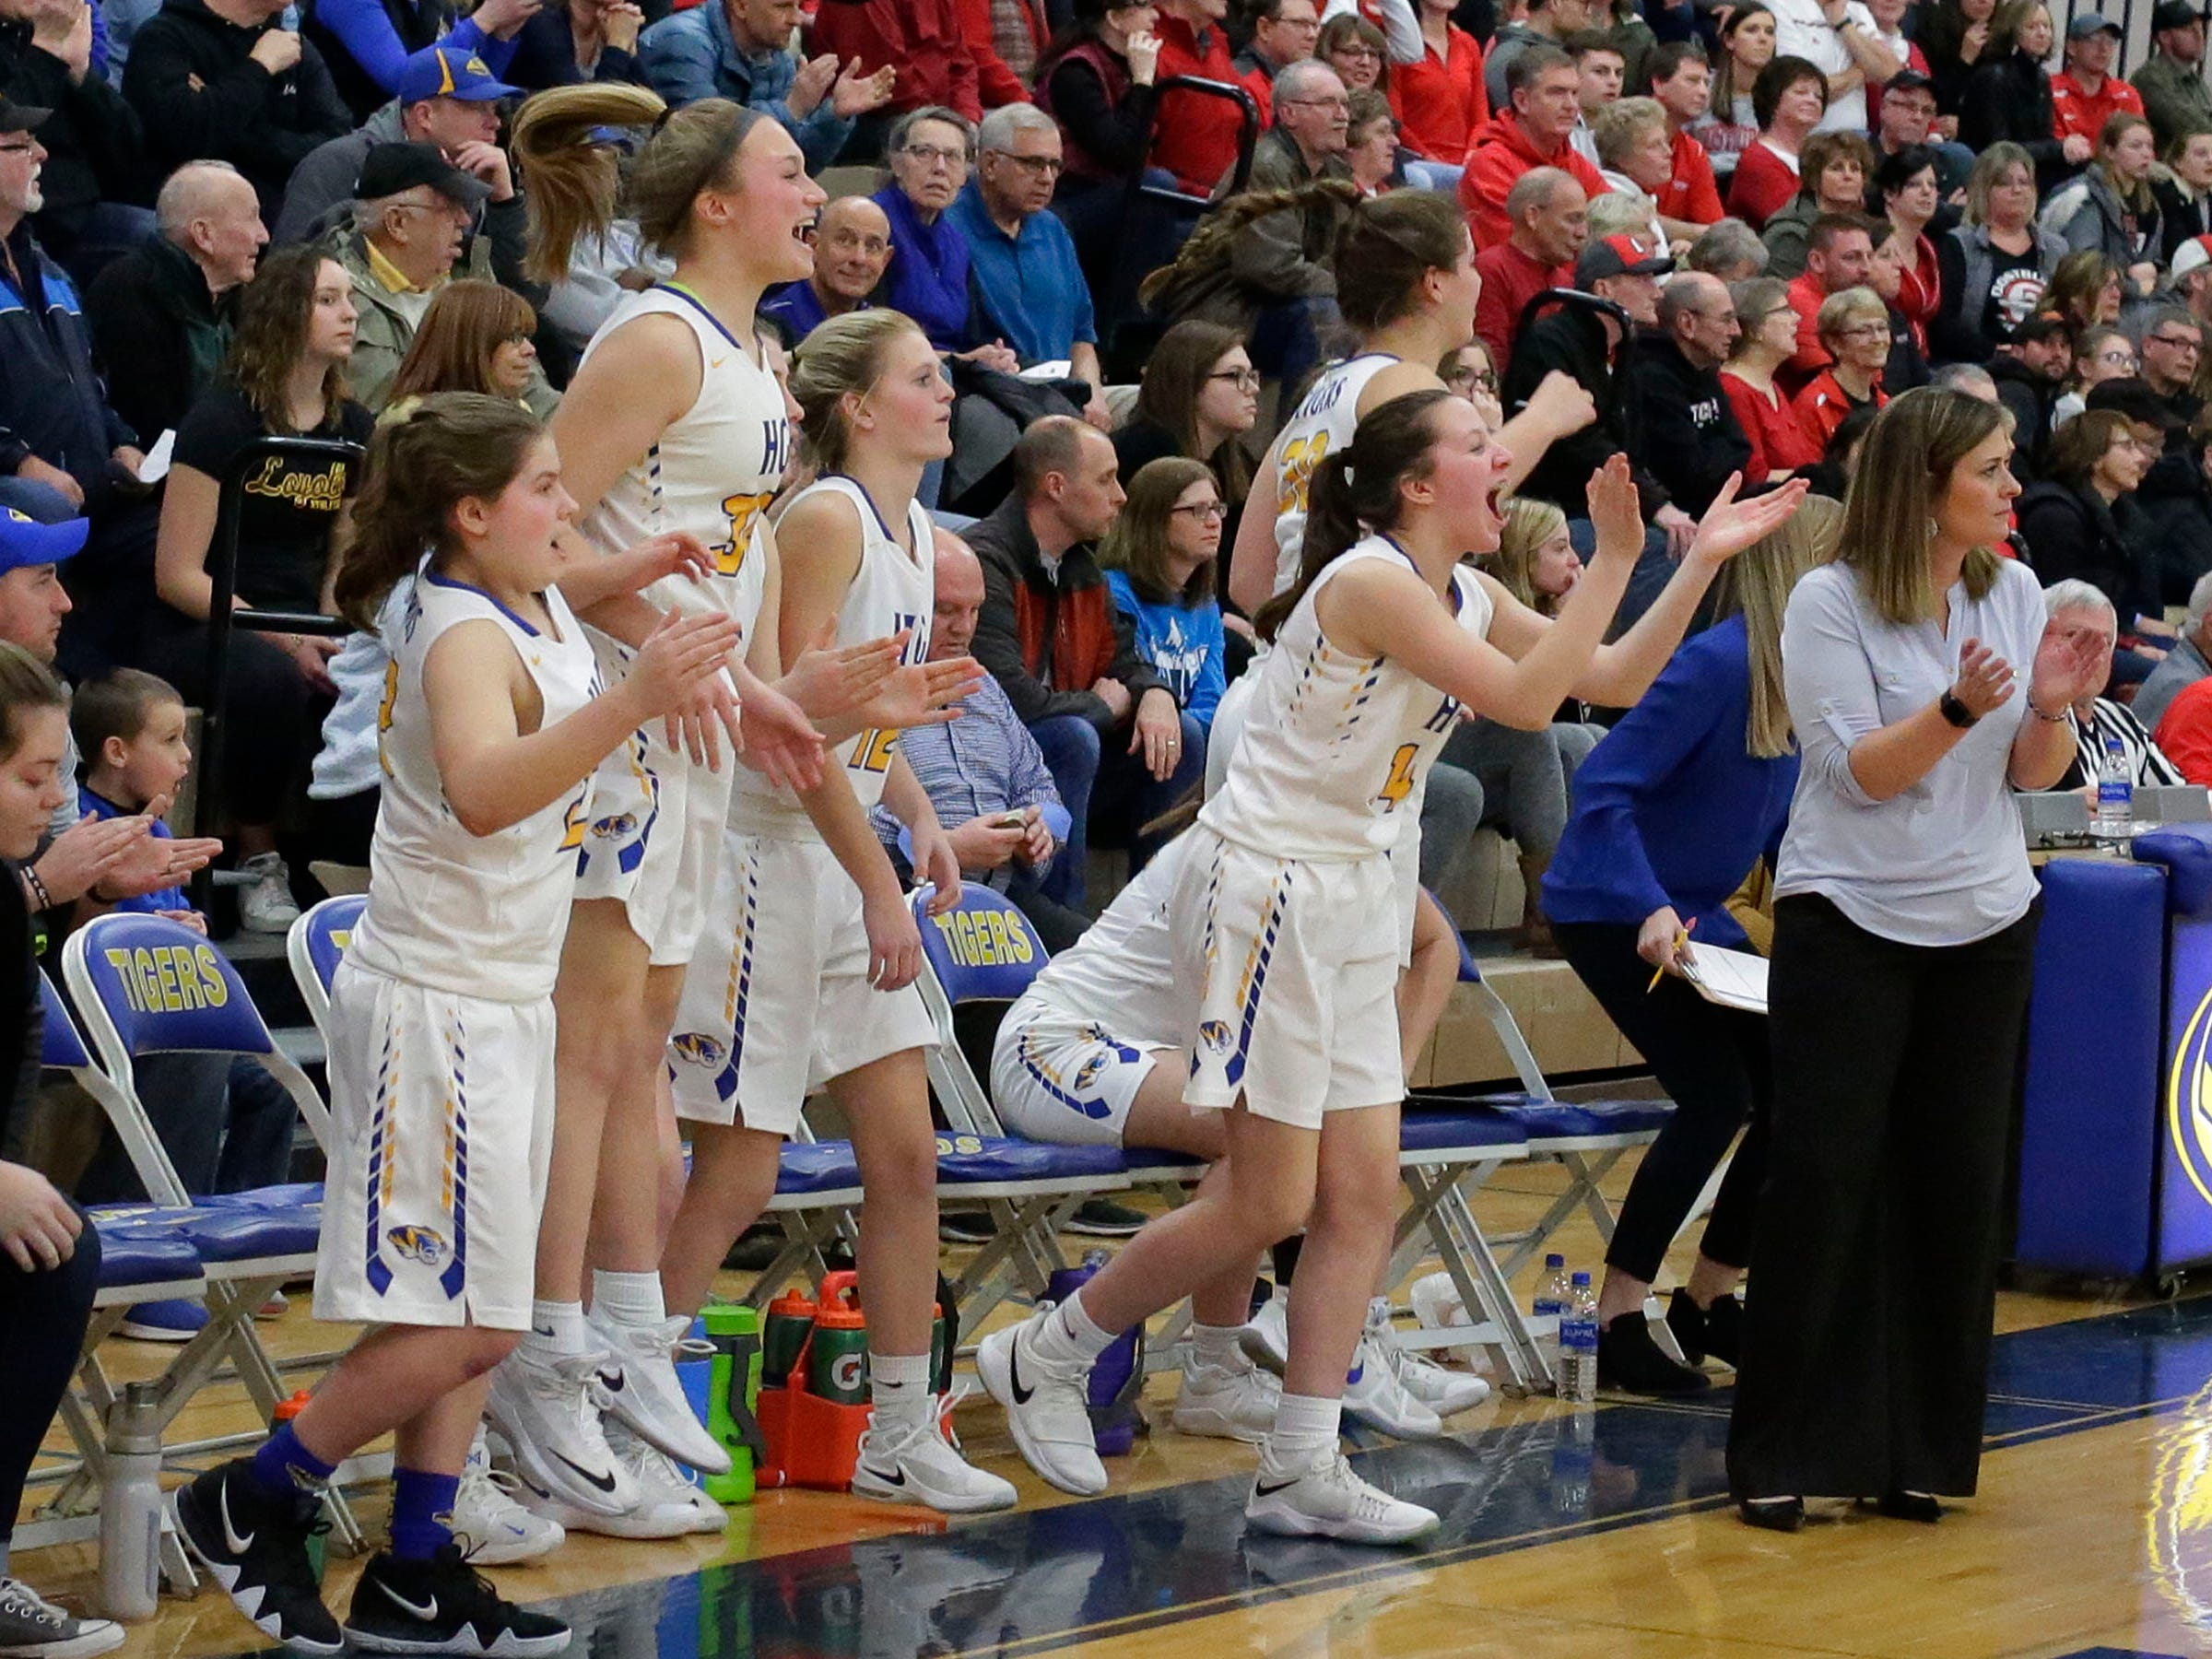 Howards Grove's bench explodes with joy in their overtime win over Oostburg, Saturday, February 23, 2019, at Howards Grove, Wis.